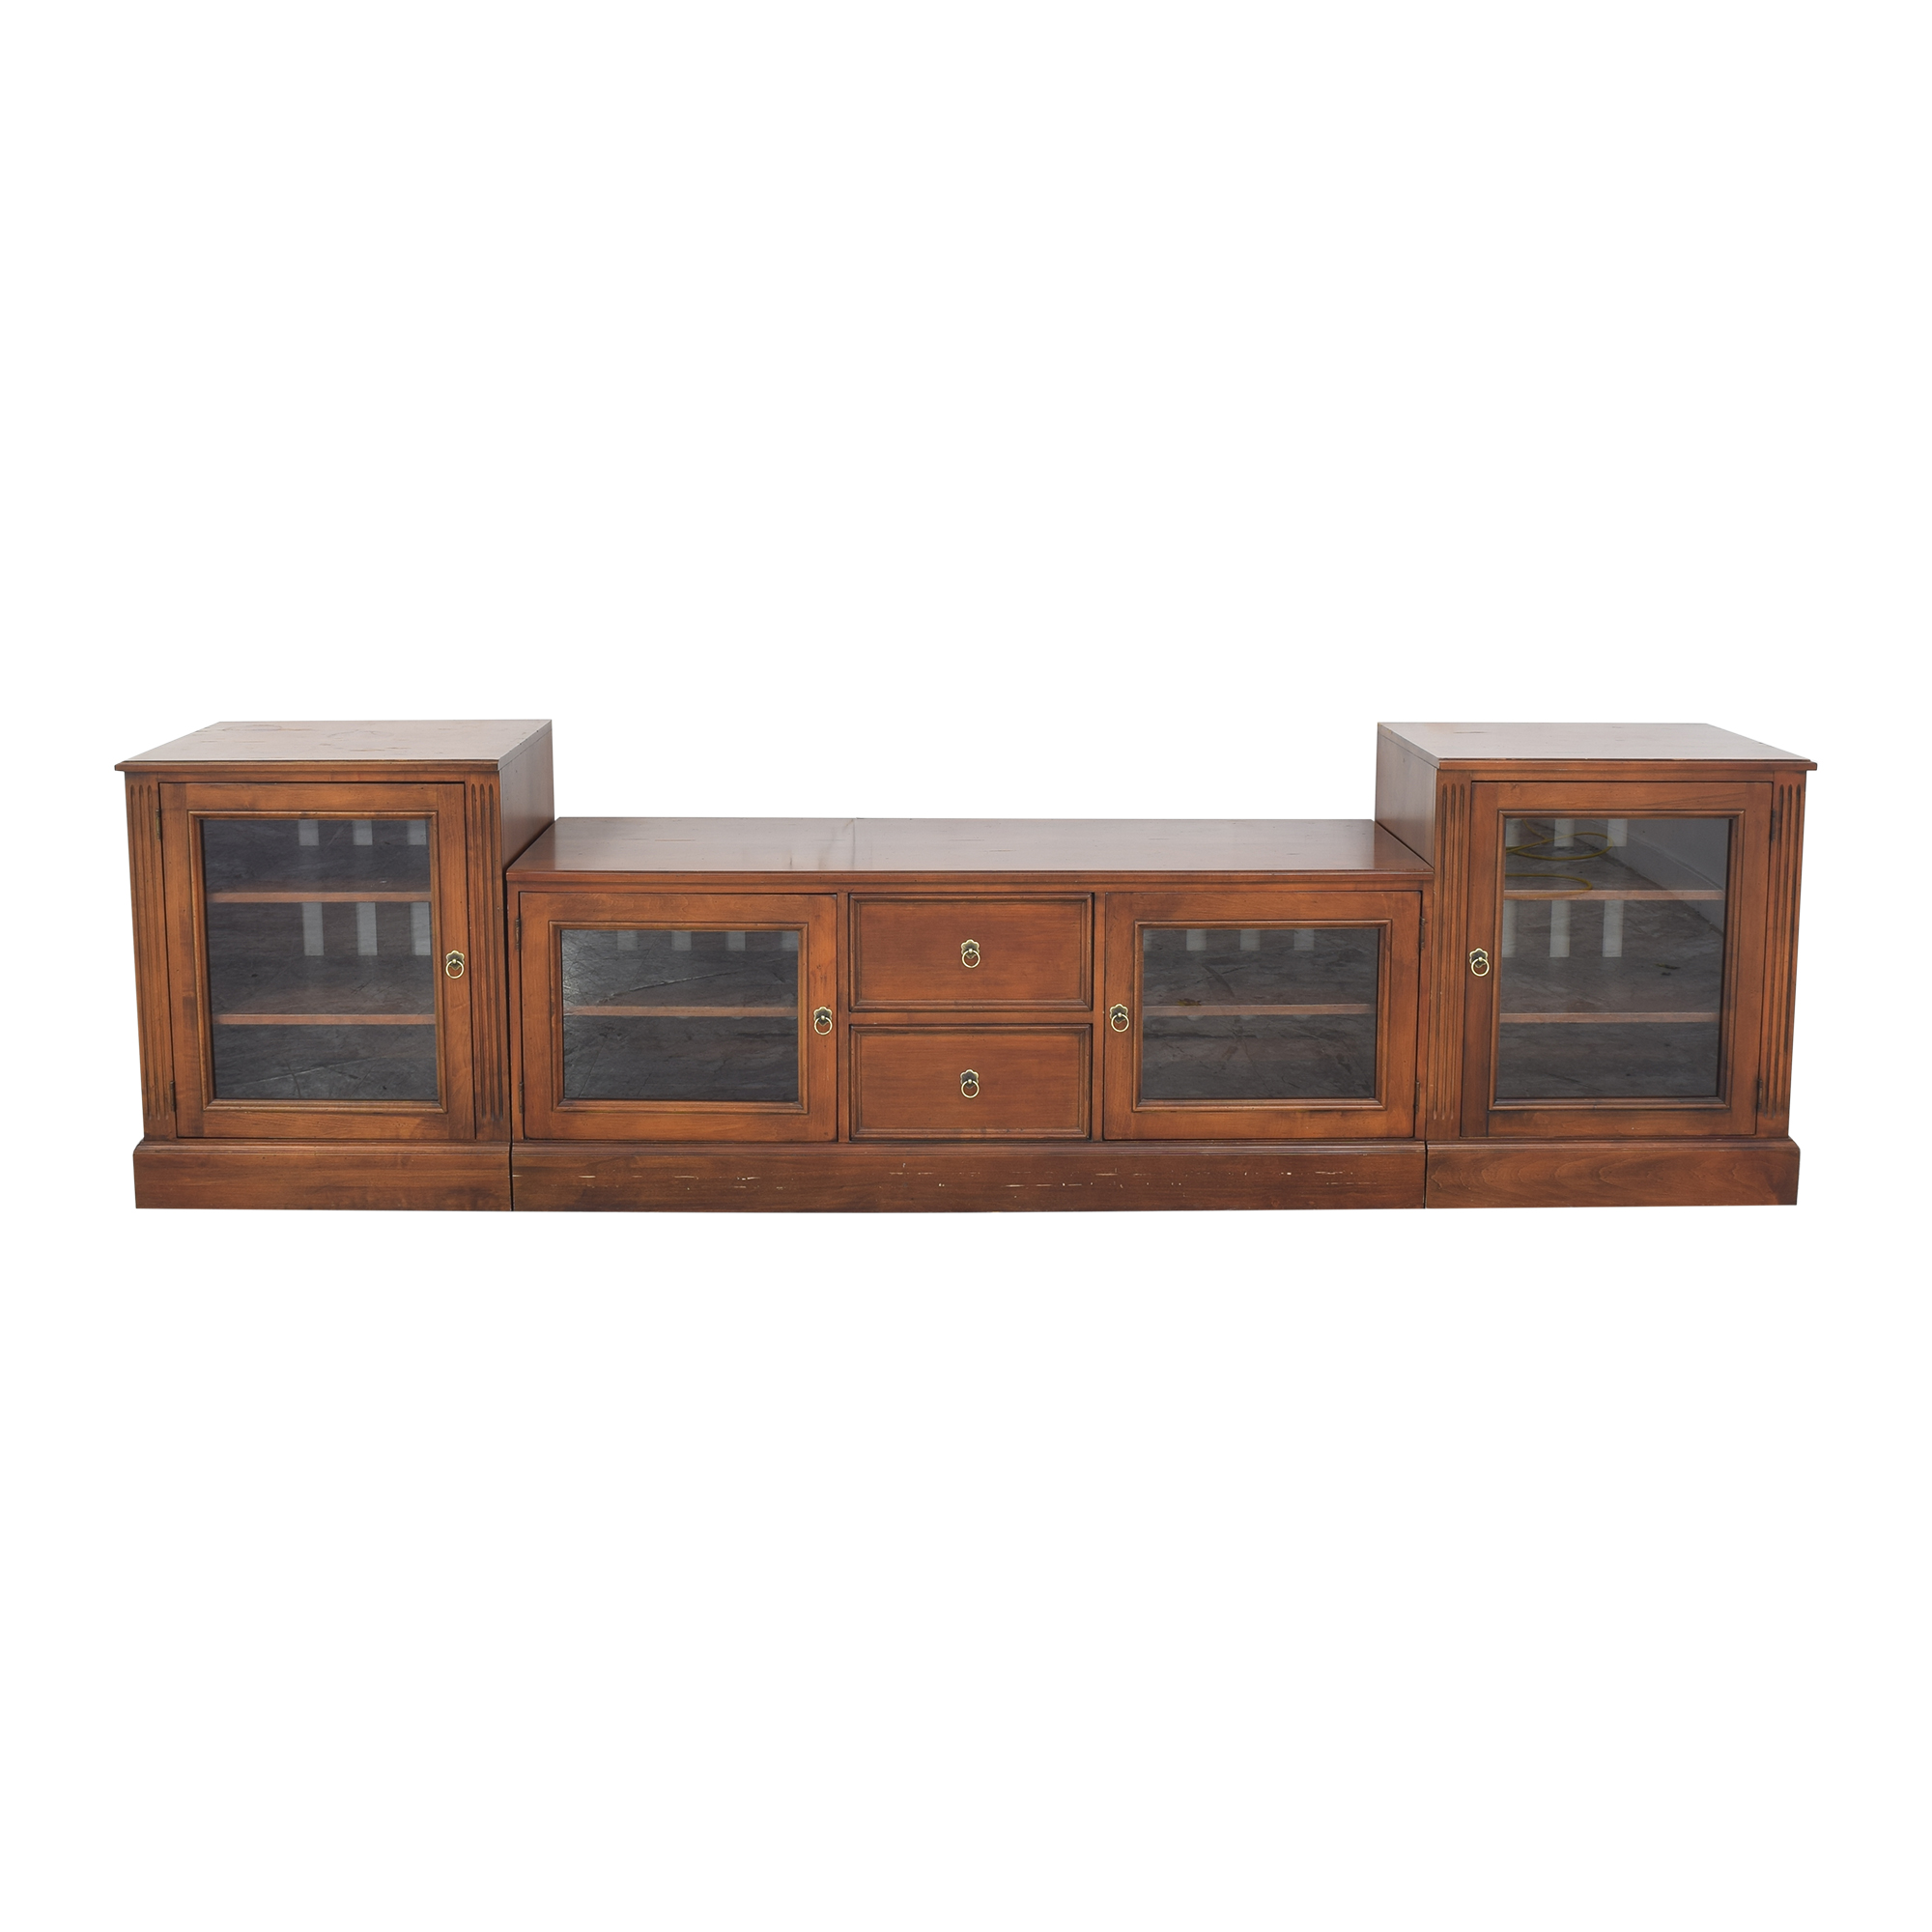 Ethan Allen Ethan Allen British Classics Media Console Cabinets & Sideboards